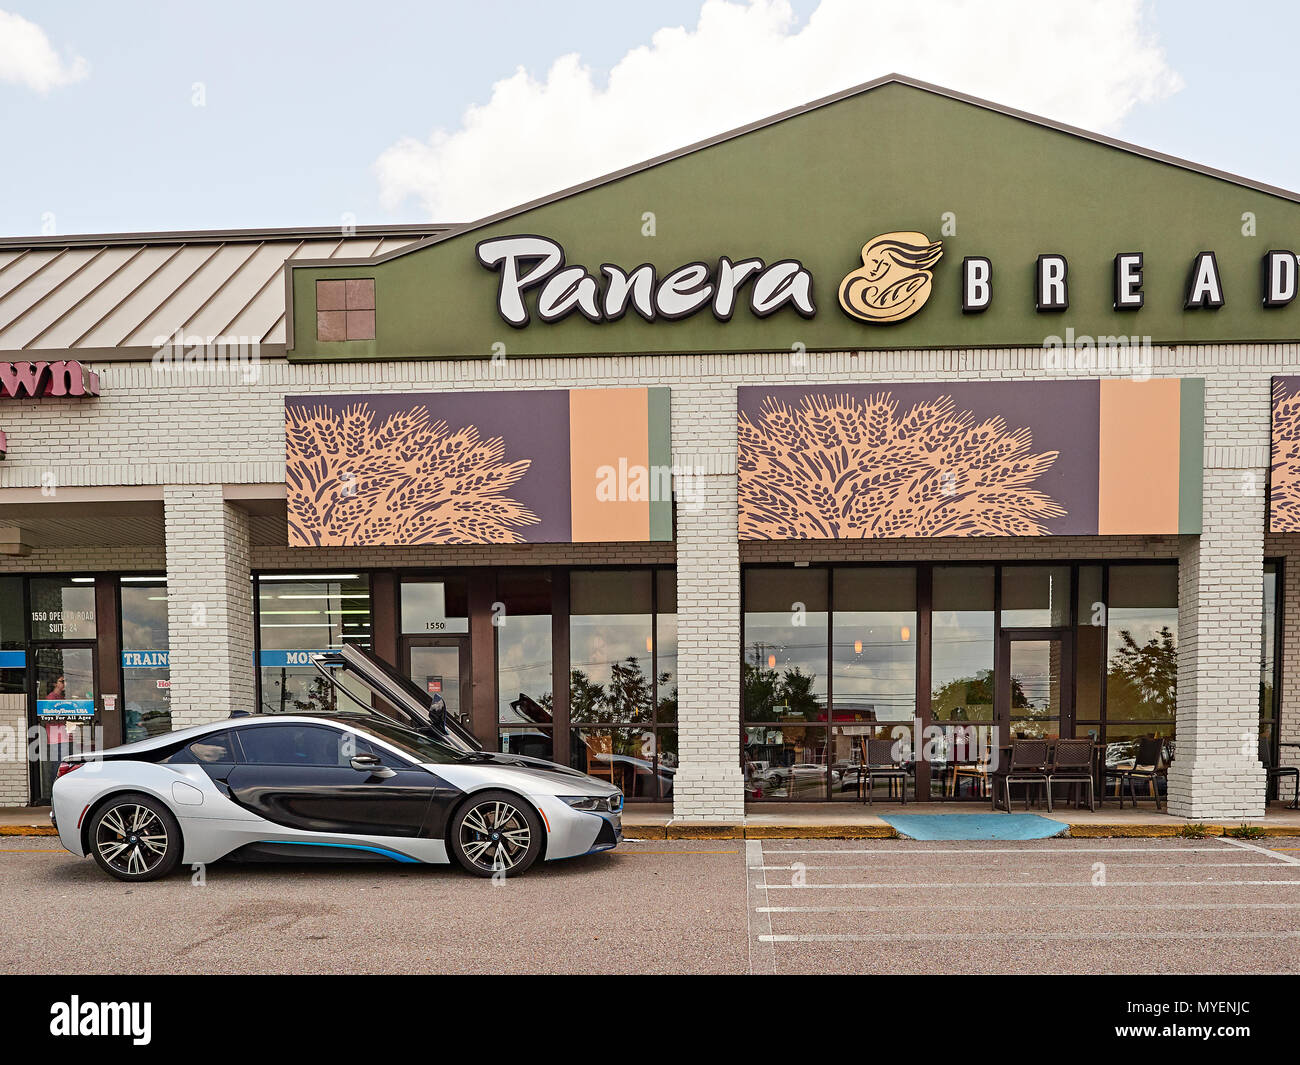 BMW i8 luxury electric hybrid plug-in super car parked in front of Panera Bread in Opelika Alabama, USA. Stock Photo